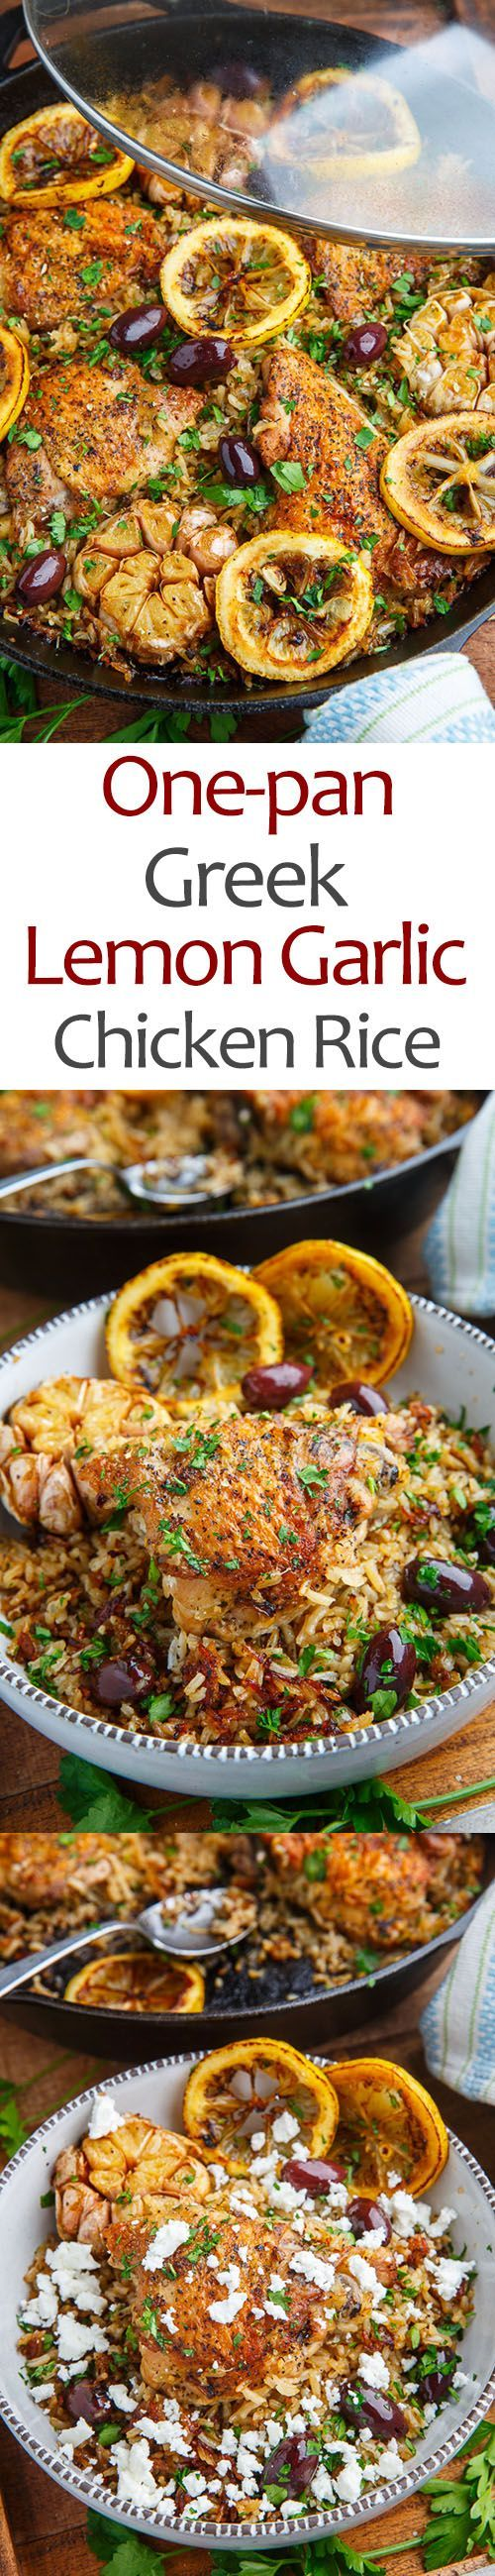 98 best greek food recipes images on pinterest greek recipes one pan greek lemon chicken rice with roast garlic forumfinder Choice Image